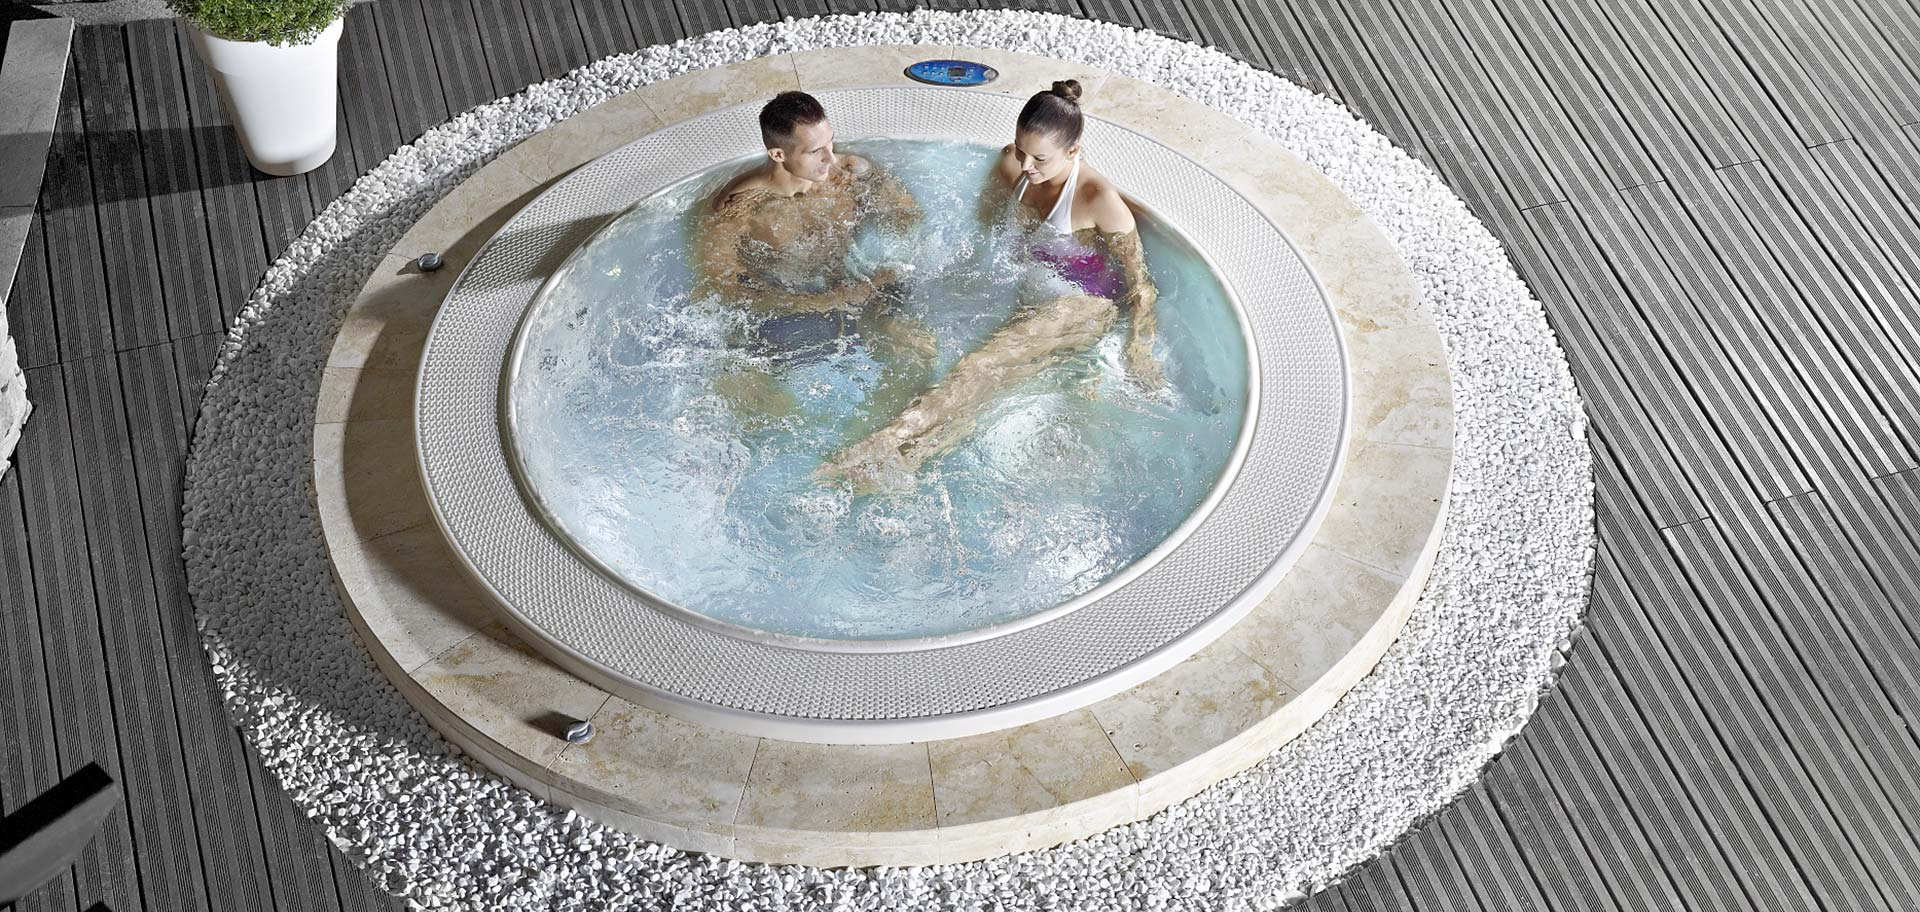 Double Bathtubs for Romantic Moments - Pleasure at highest ...